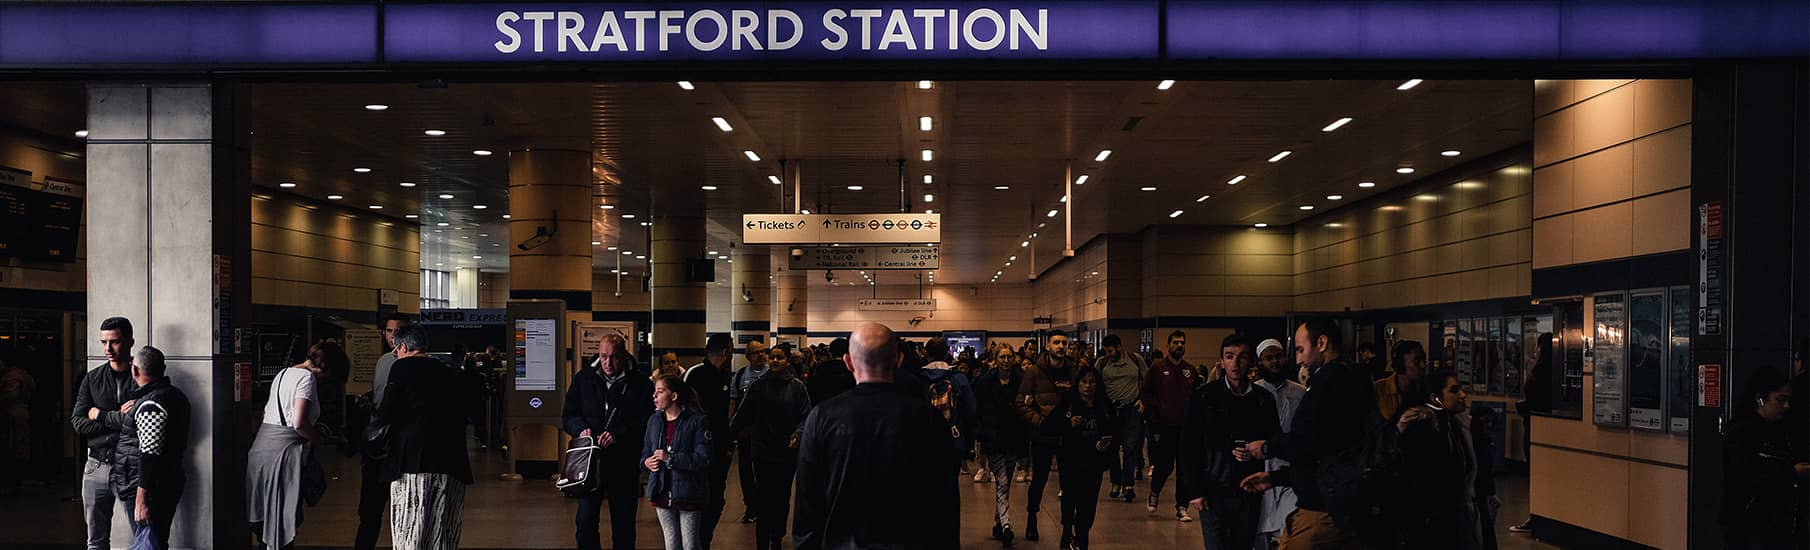 Living in Stratford: Area guide, amenities & more